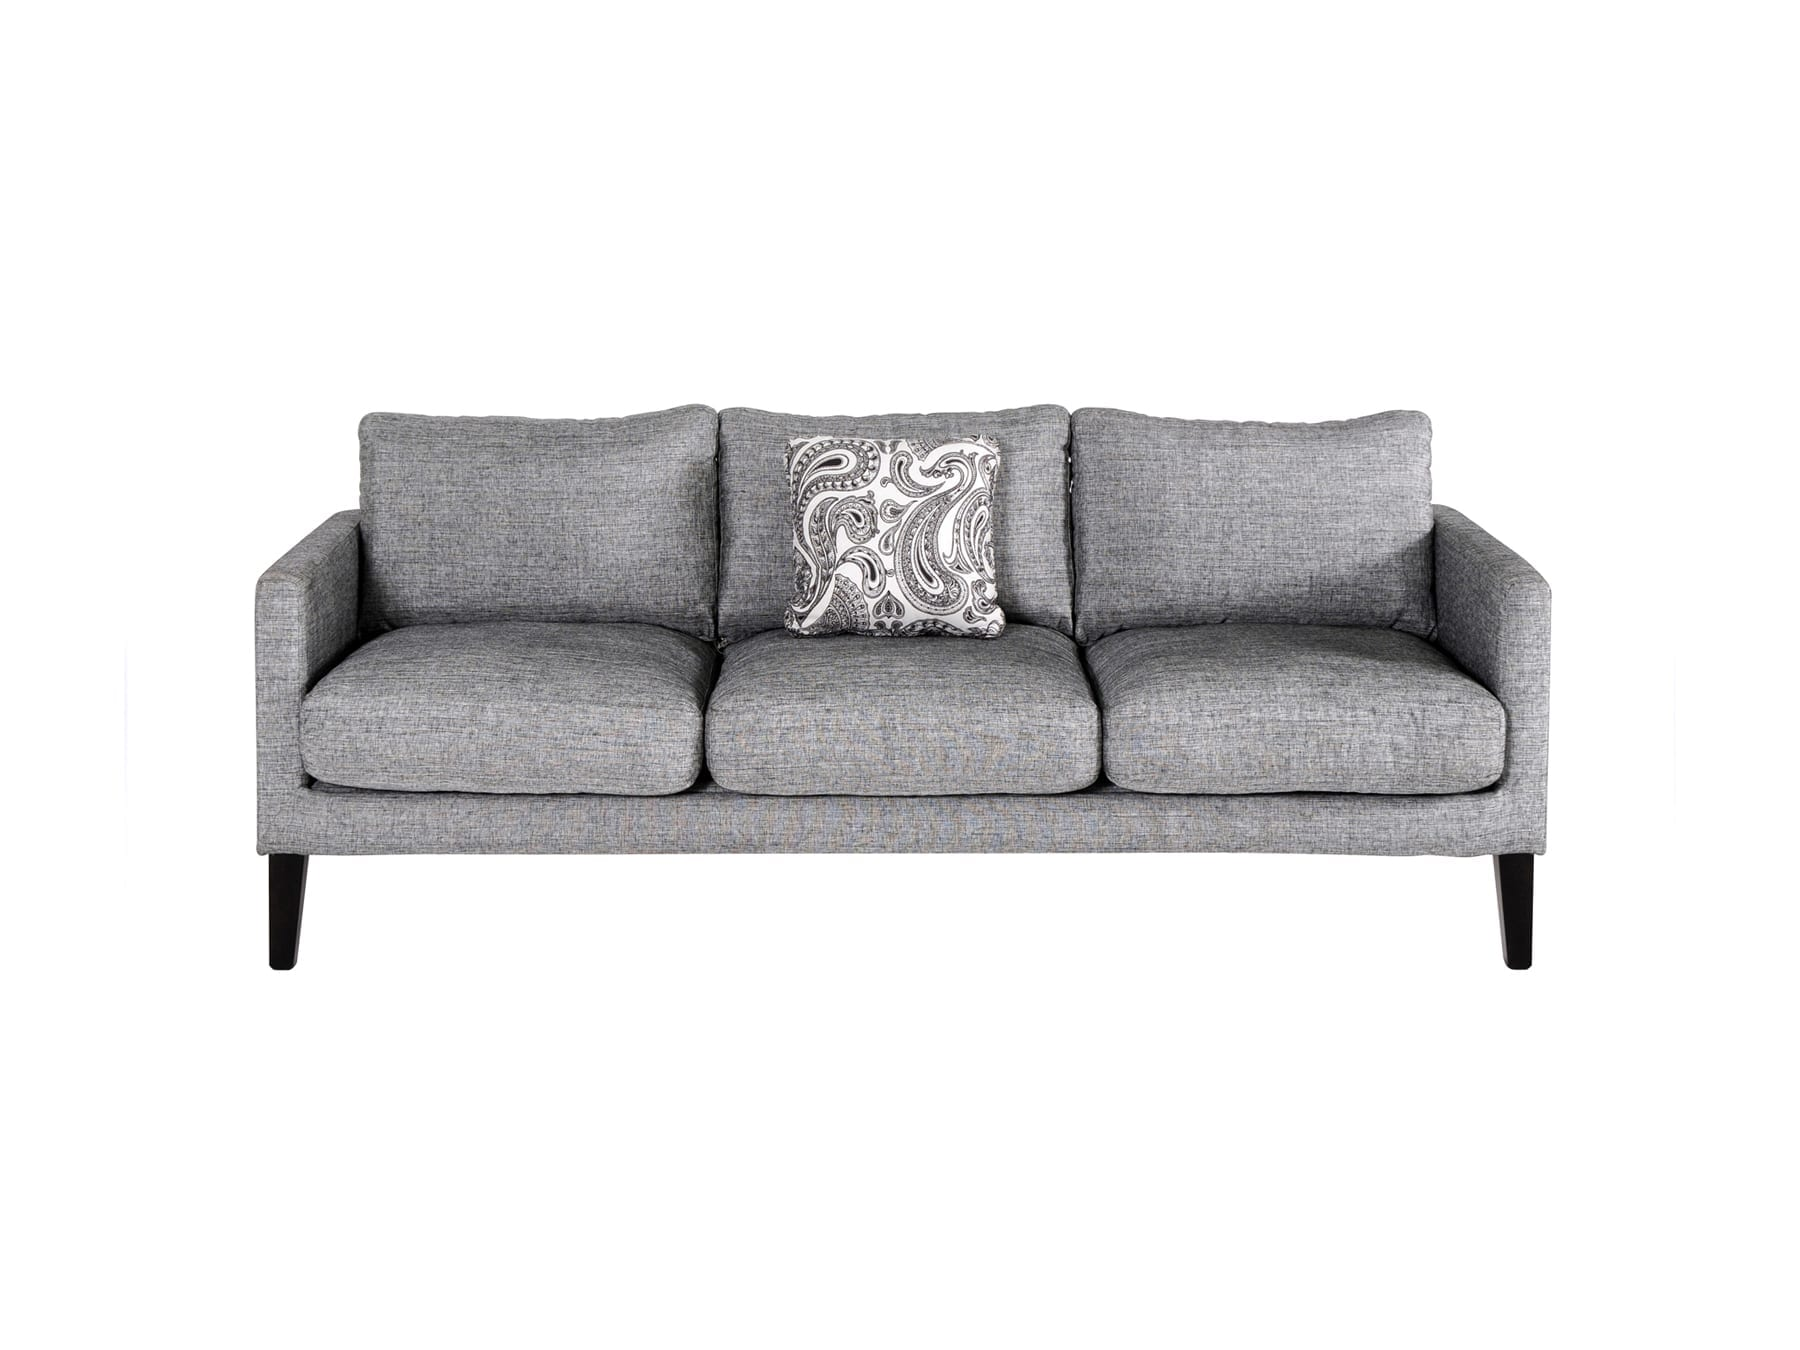 Kovacs Sienna Sofa available at McKenzie & Willis